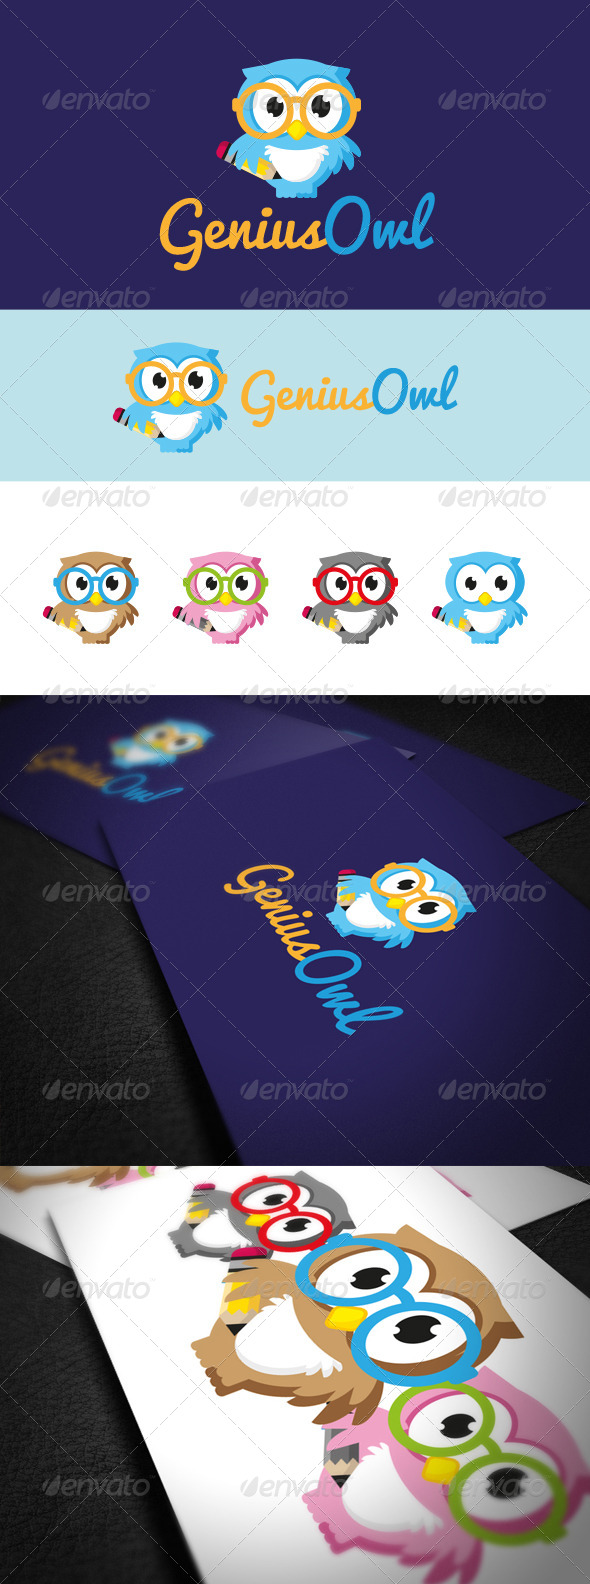 GraphicRiver Genius Owl 5576760